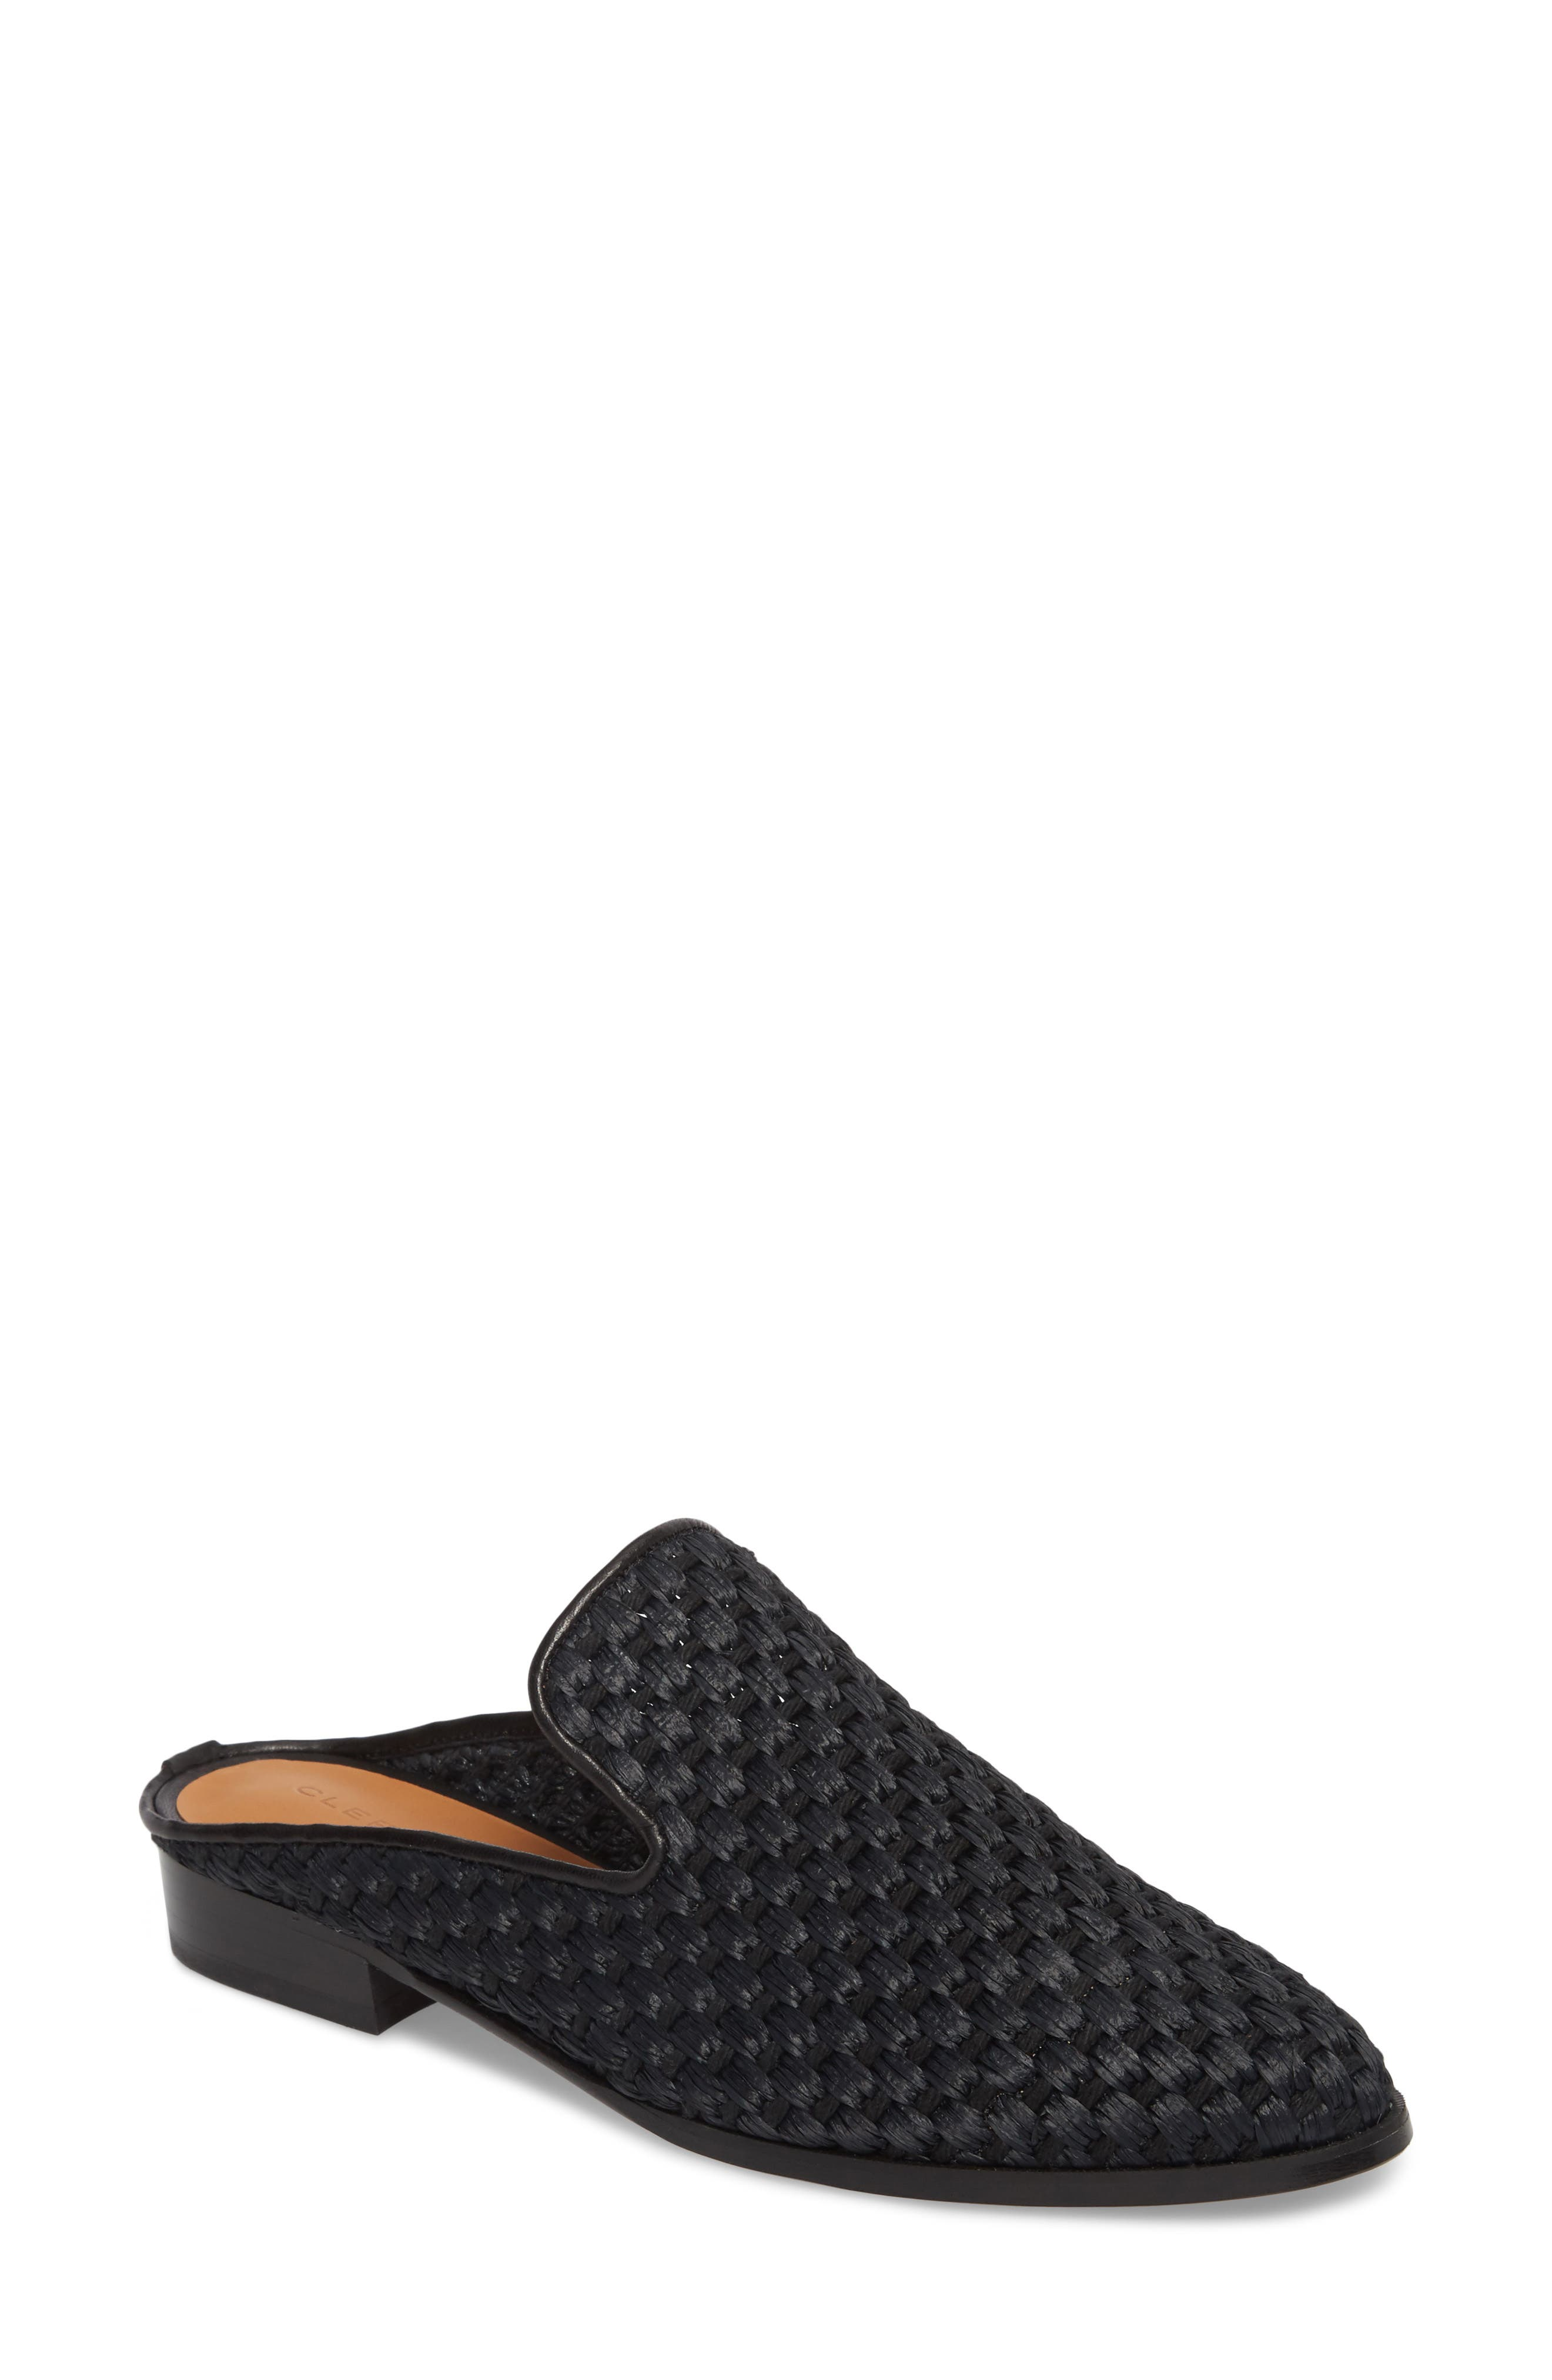 Aliceop Woven Loafer Mule,                         Main,                         color, 011